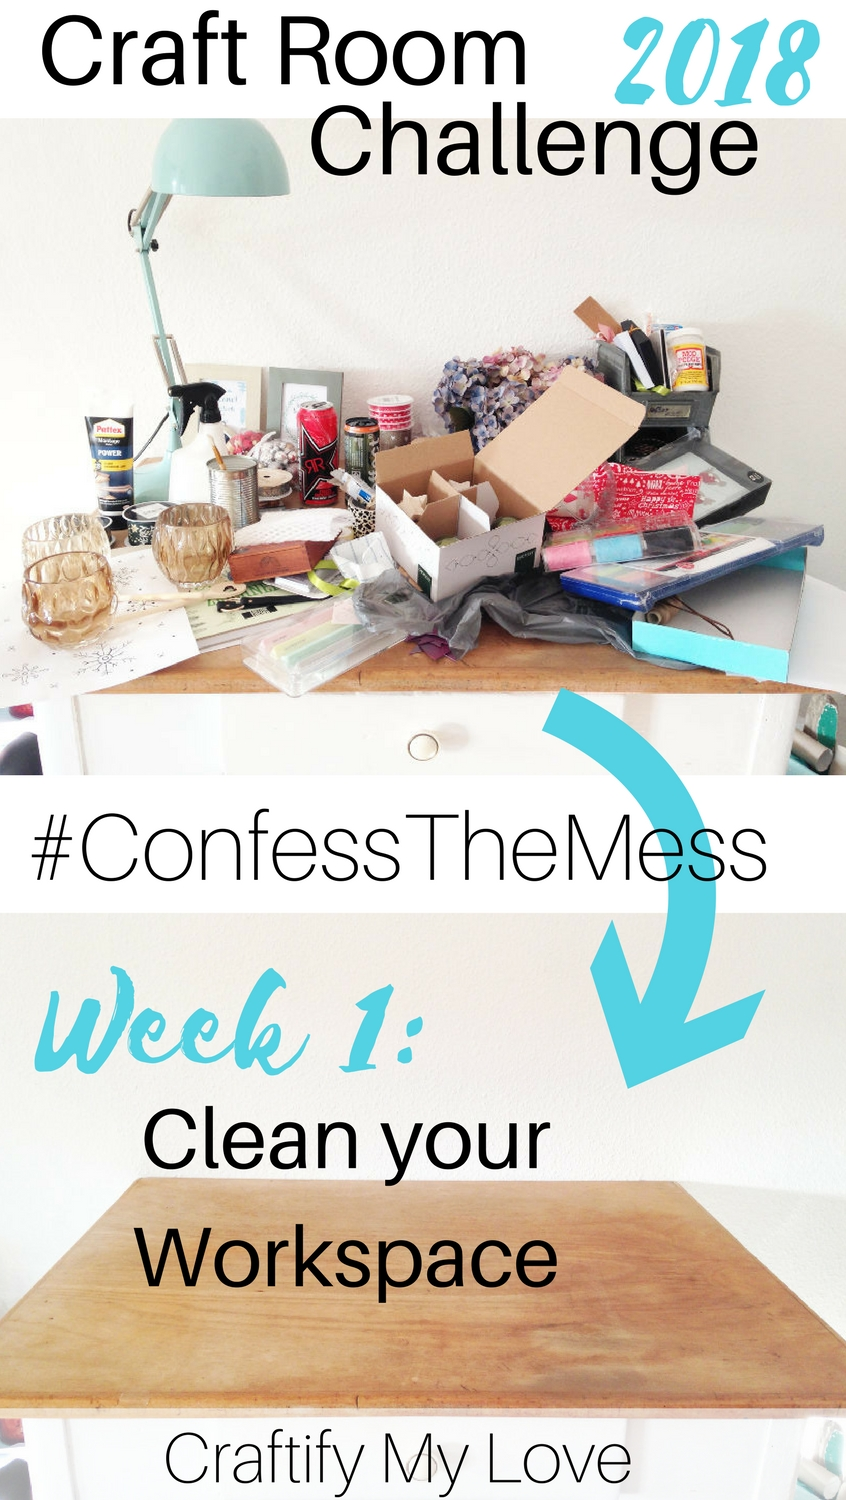 Welcome to the Craft Room Challenge 2018. Week 1 - Clean your Workspace! #craftroomchallenge #confessthemess #cleanupchallenge #craftroom #workspace #organizeationtips #organize